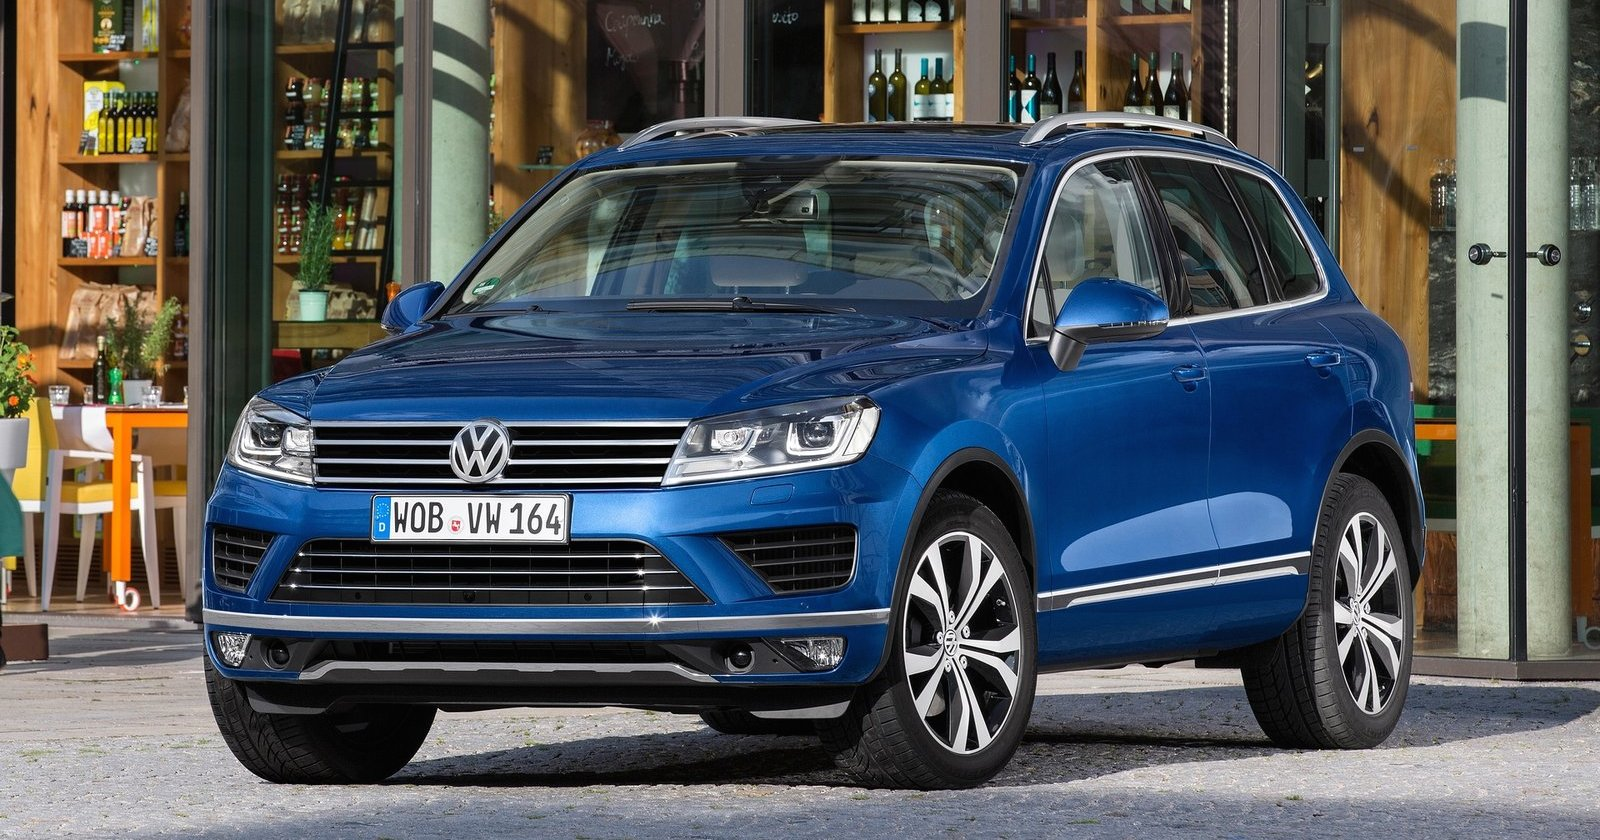 2015 Volkswagen Touareg Pricing And Specifications Caradvice